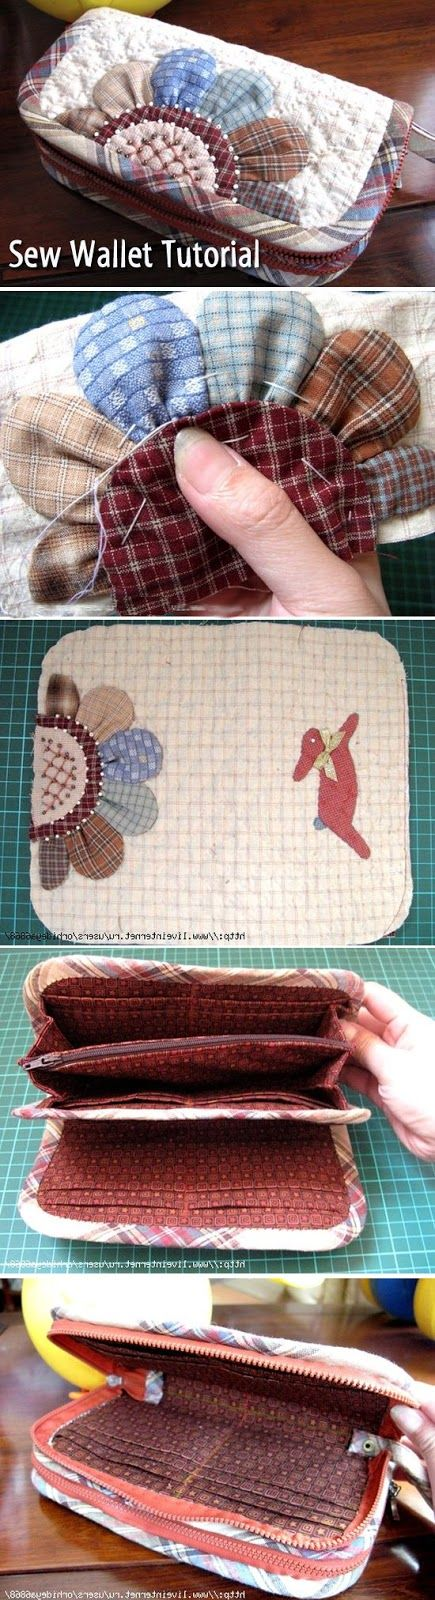 Step by step instructions for sewing a small purse or wallet. http://www.handmadiya.com/2015/12/accordion-purse-wallet-tutorial.html